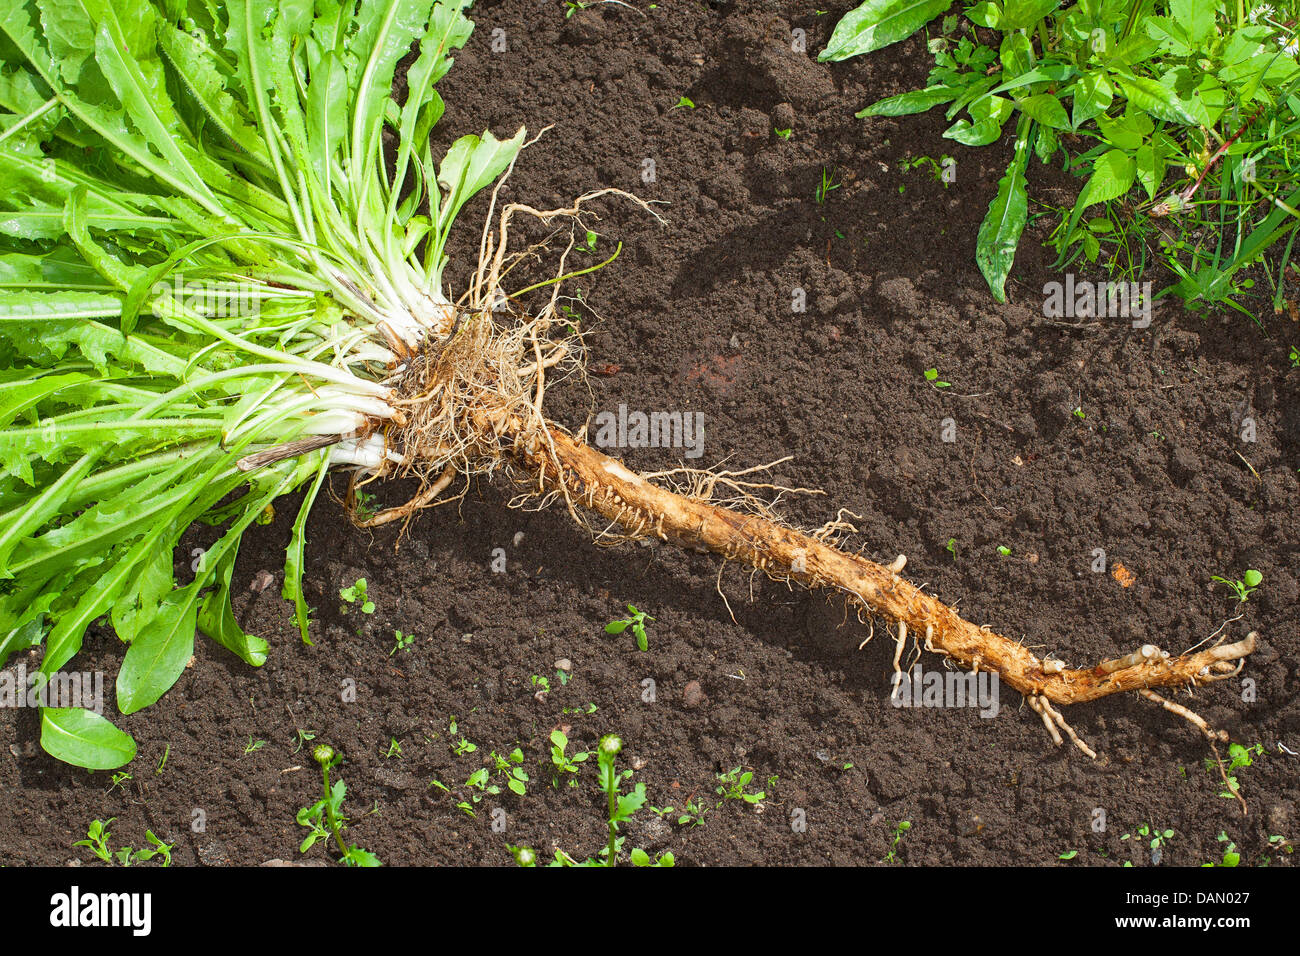 blue sailors, common chicory, wild succory (Cichorium intybus), cultivated chicory dug out, Germany - Stock Image